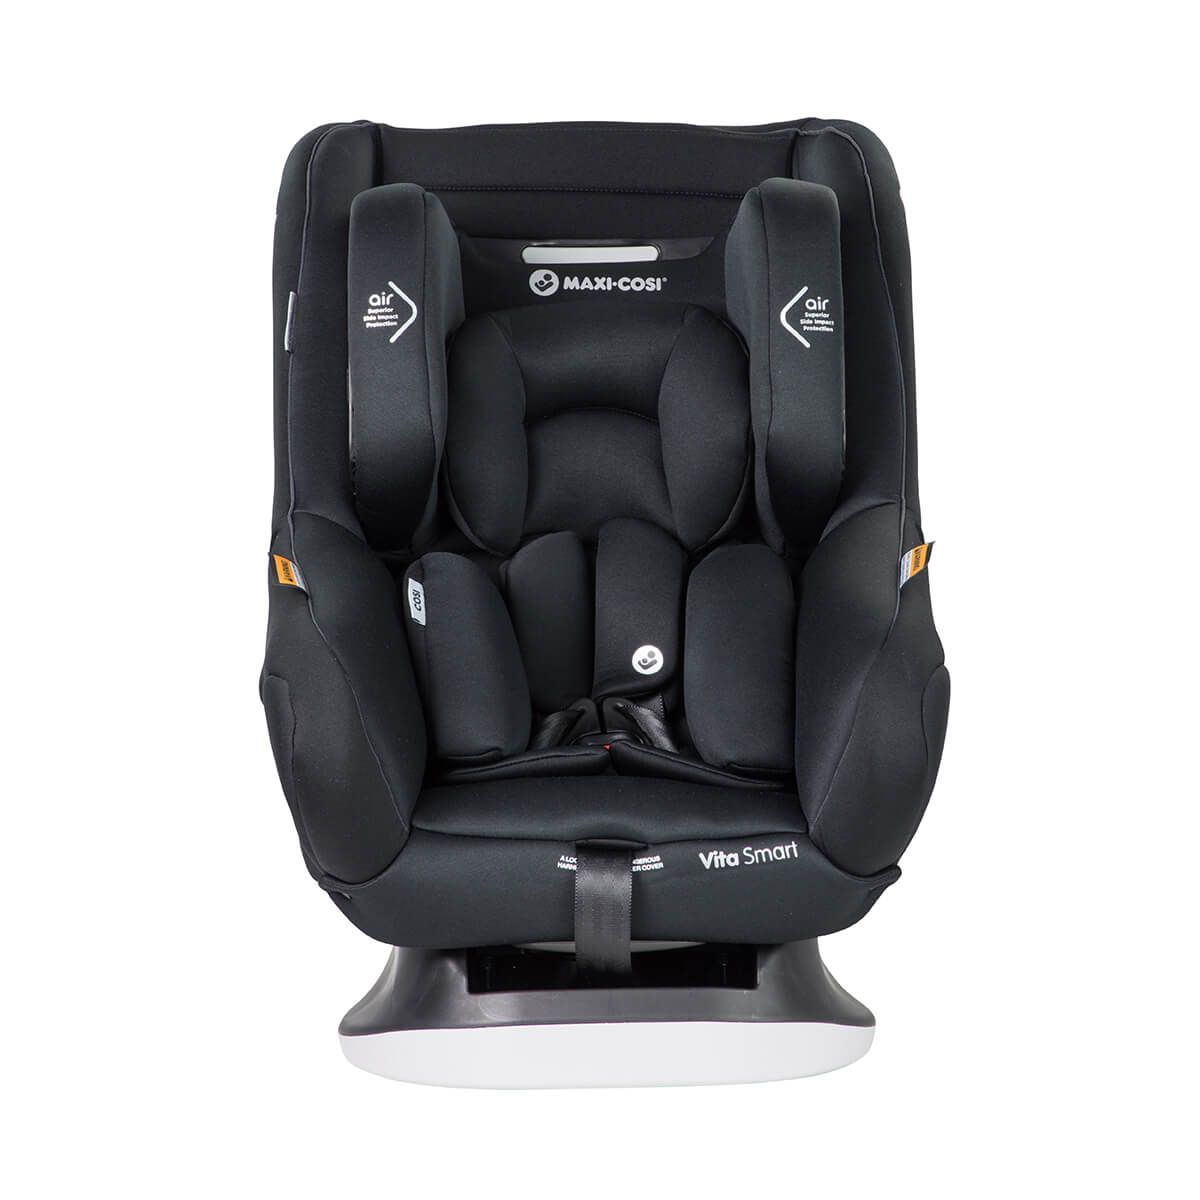 Maxi Cosi Vita Smart - Jet Black with FREE FITTING